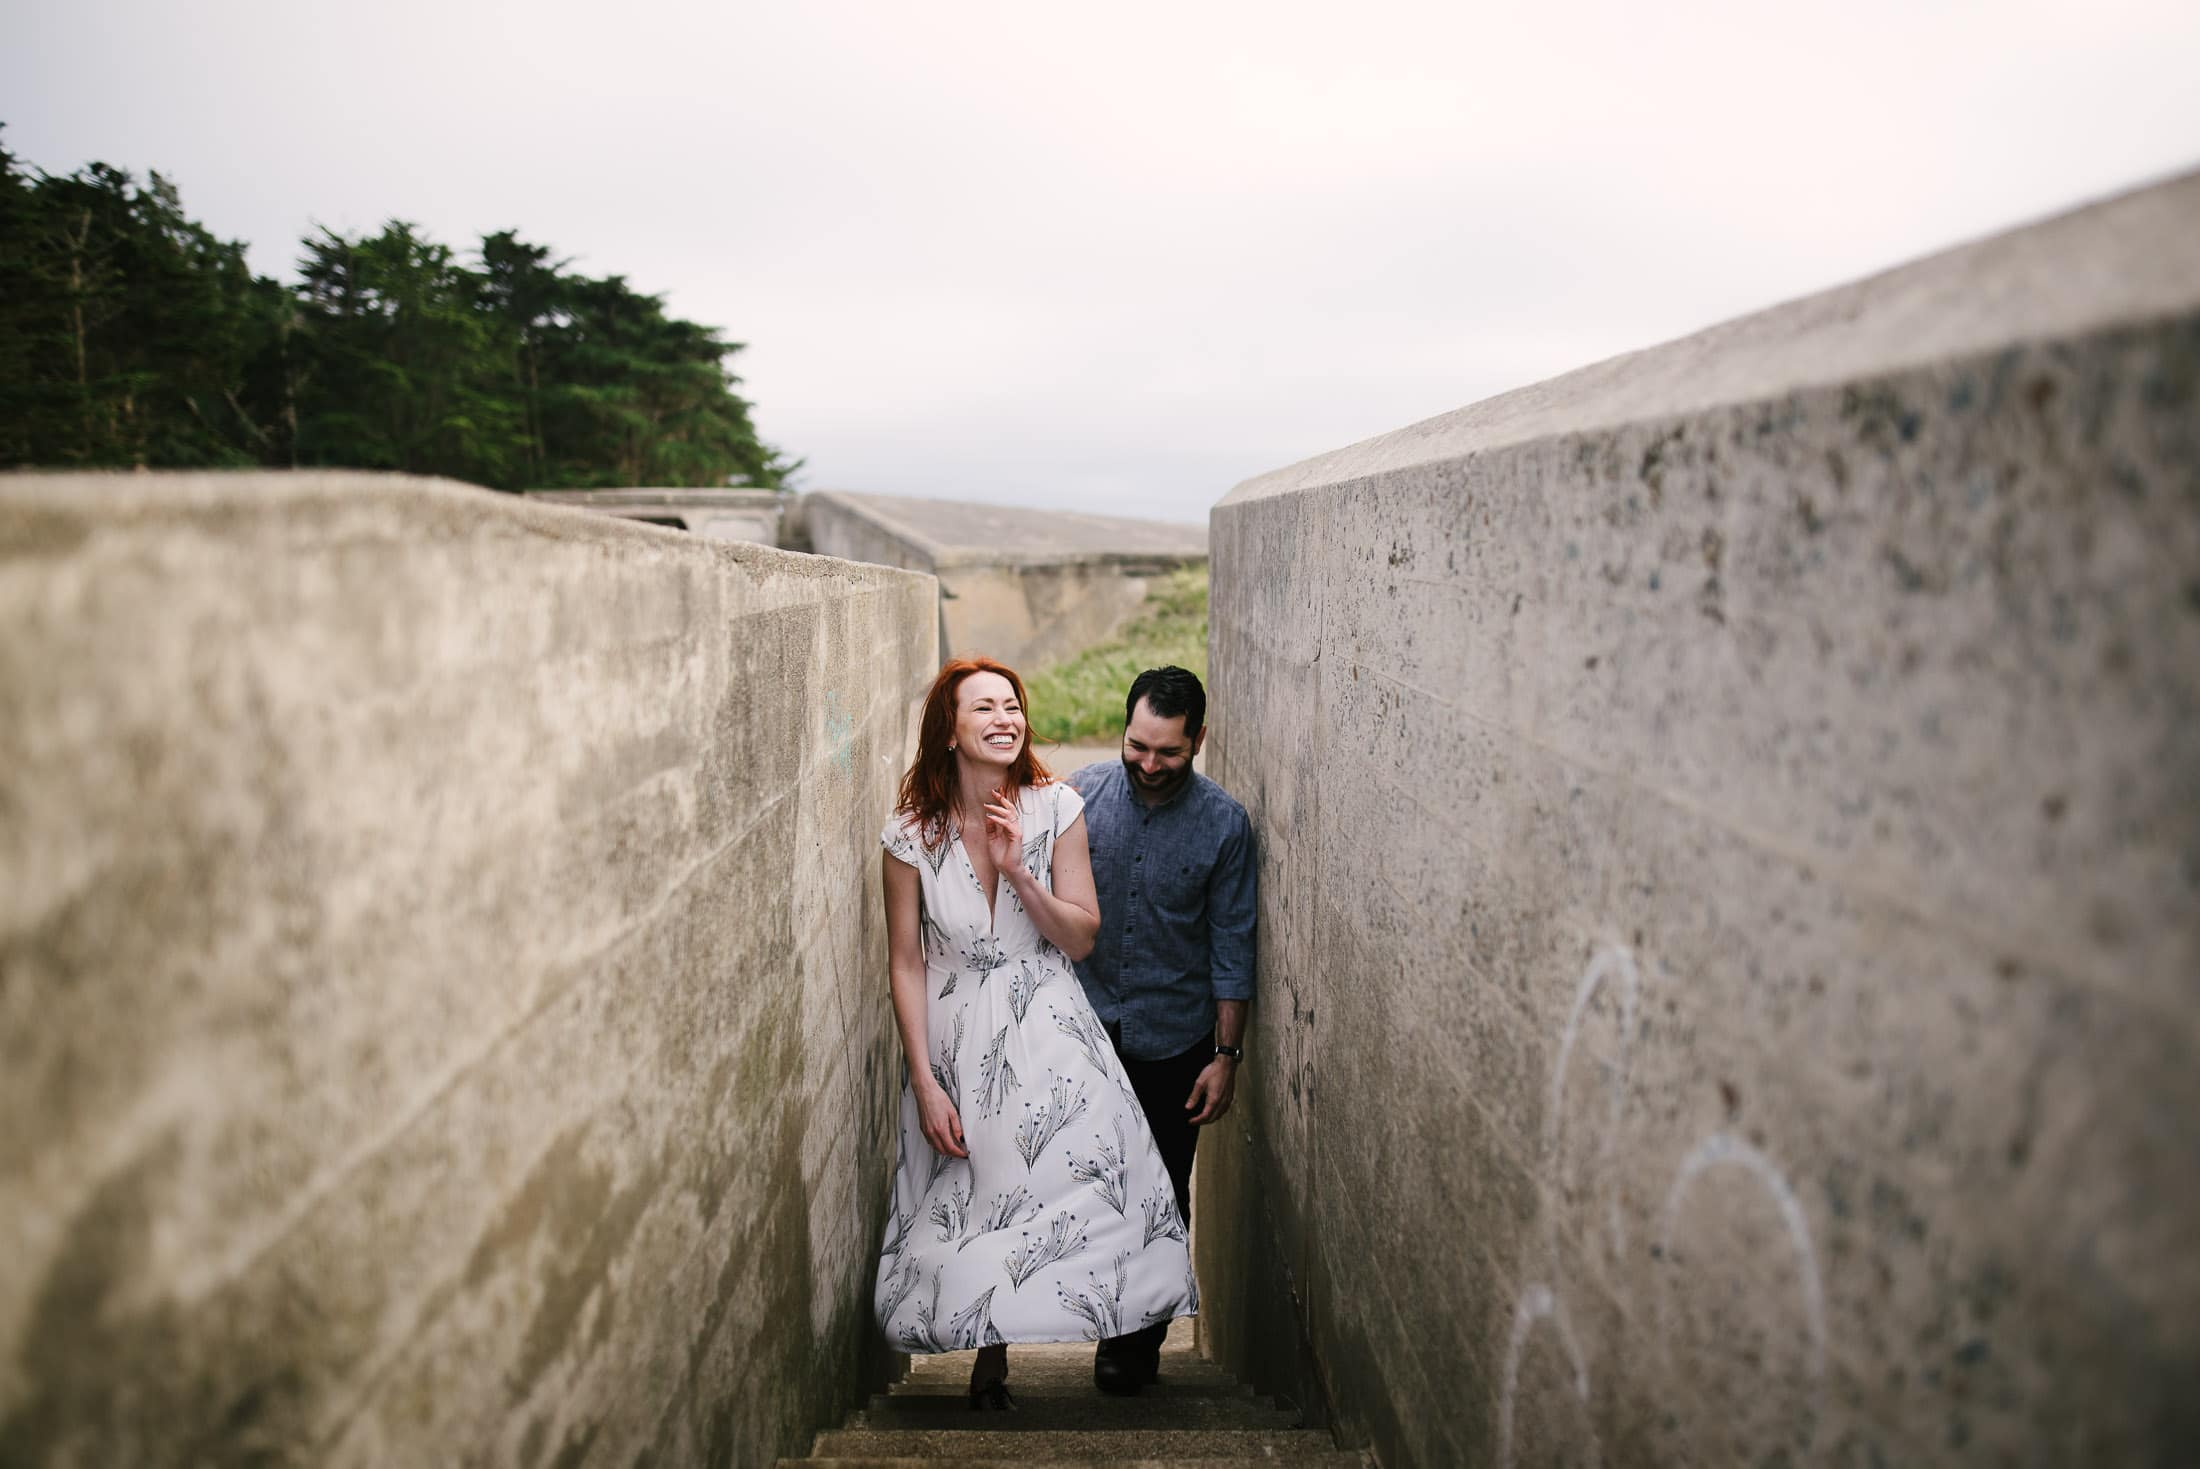 Laughing picture during engagement session